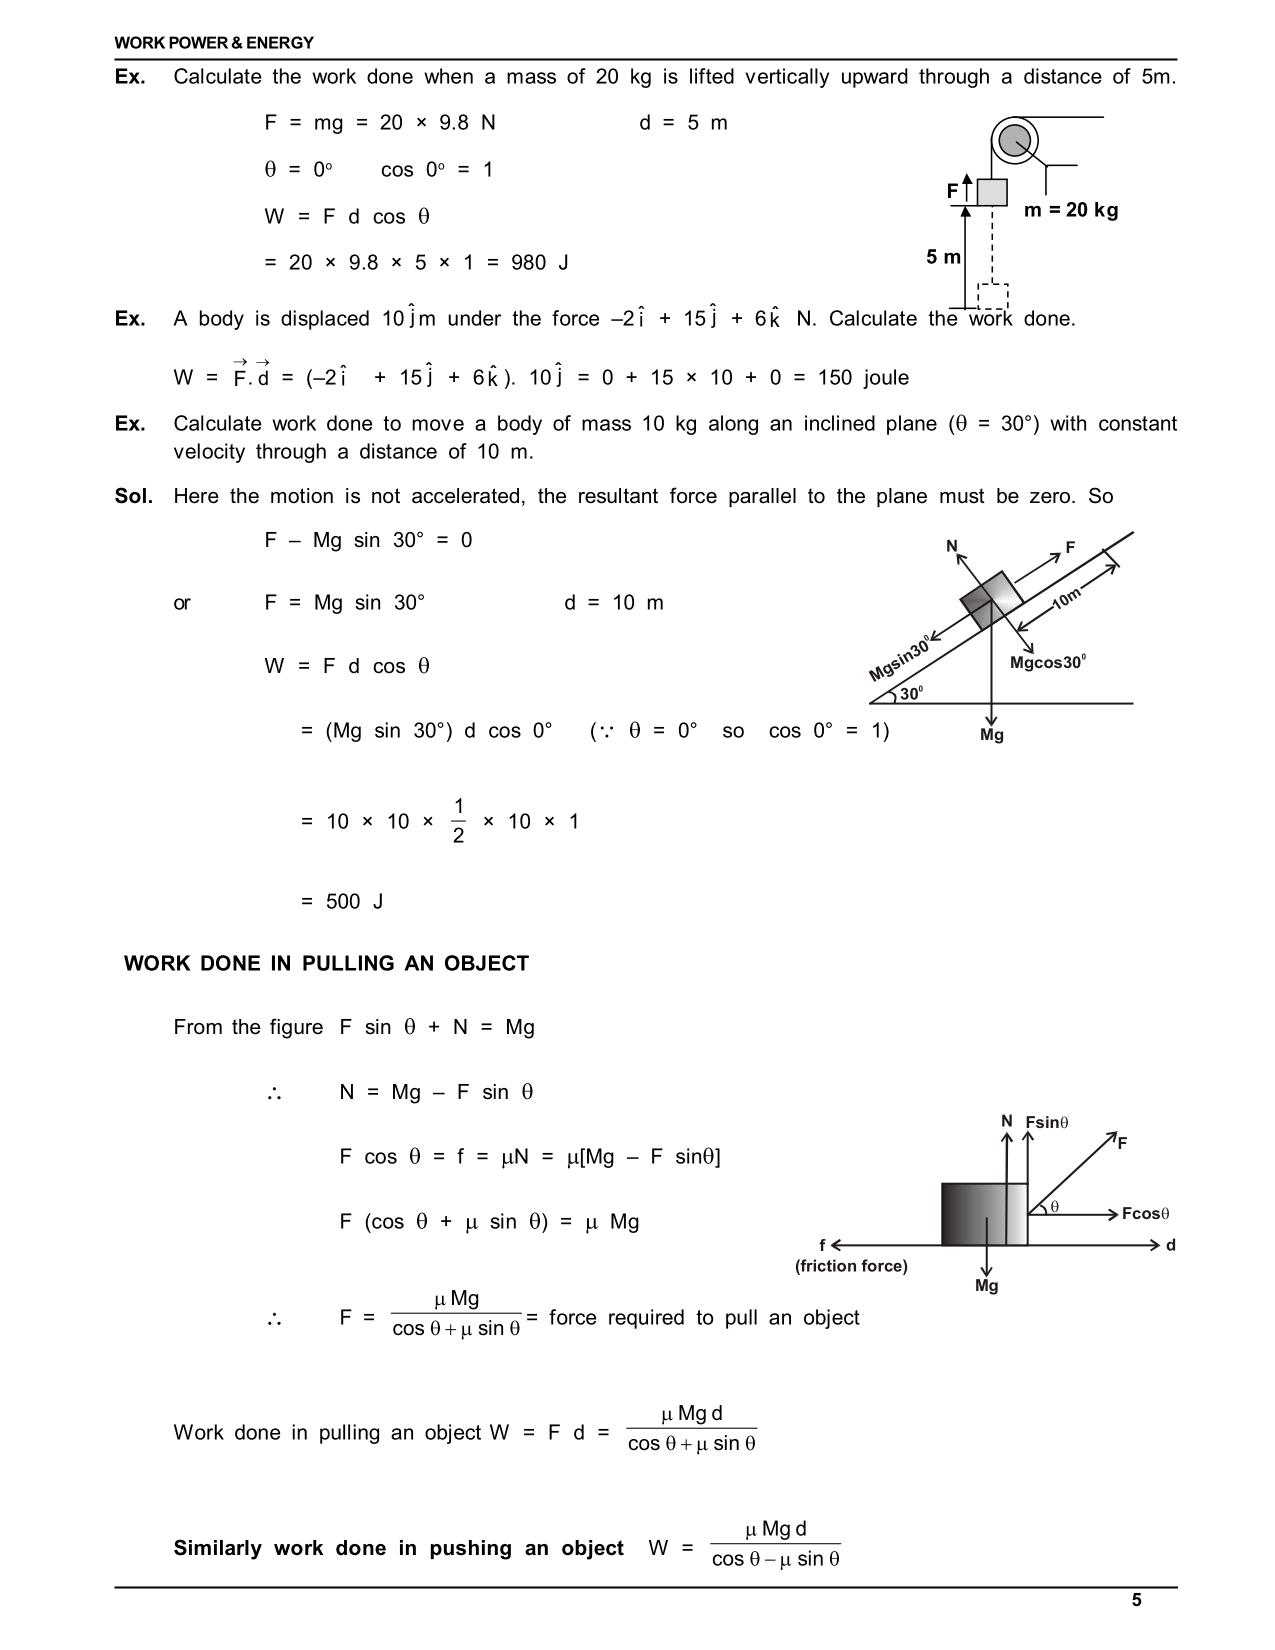 Work Energy And Power Class 11 Physics Notes Archives